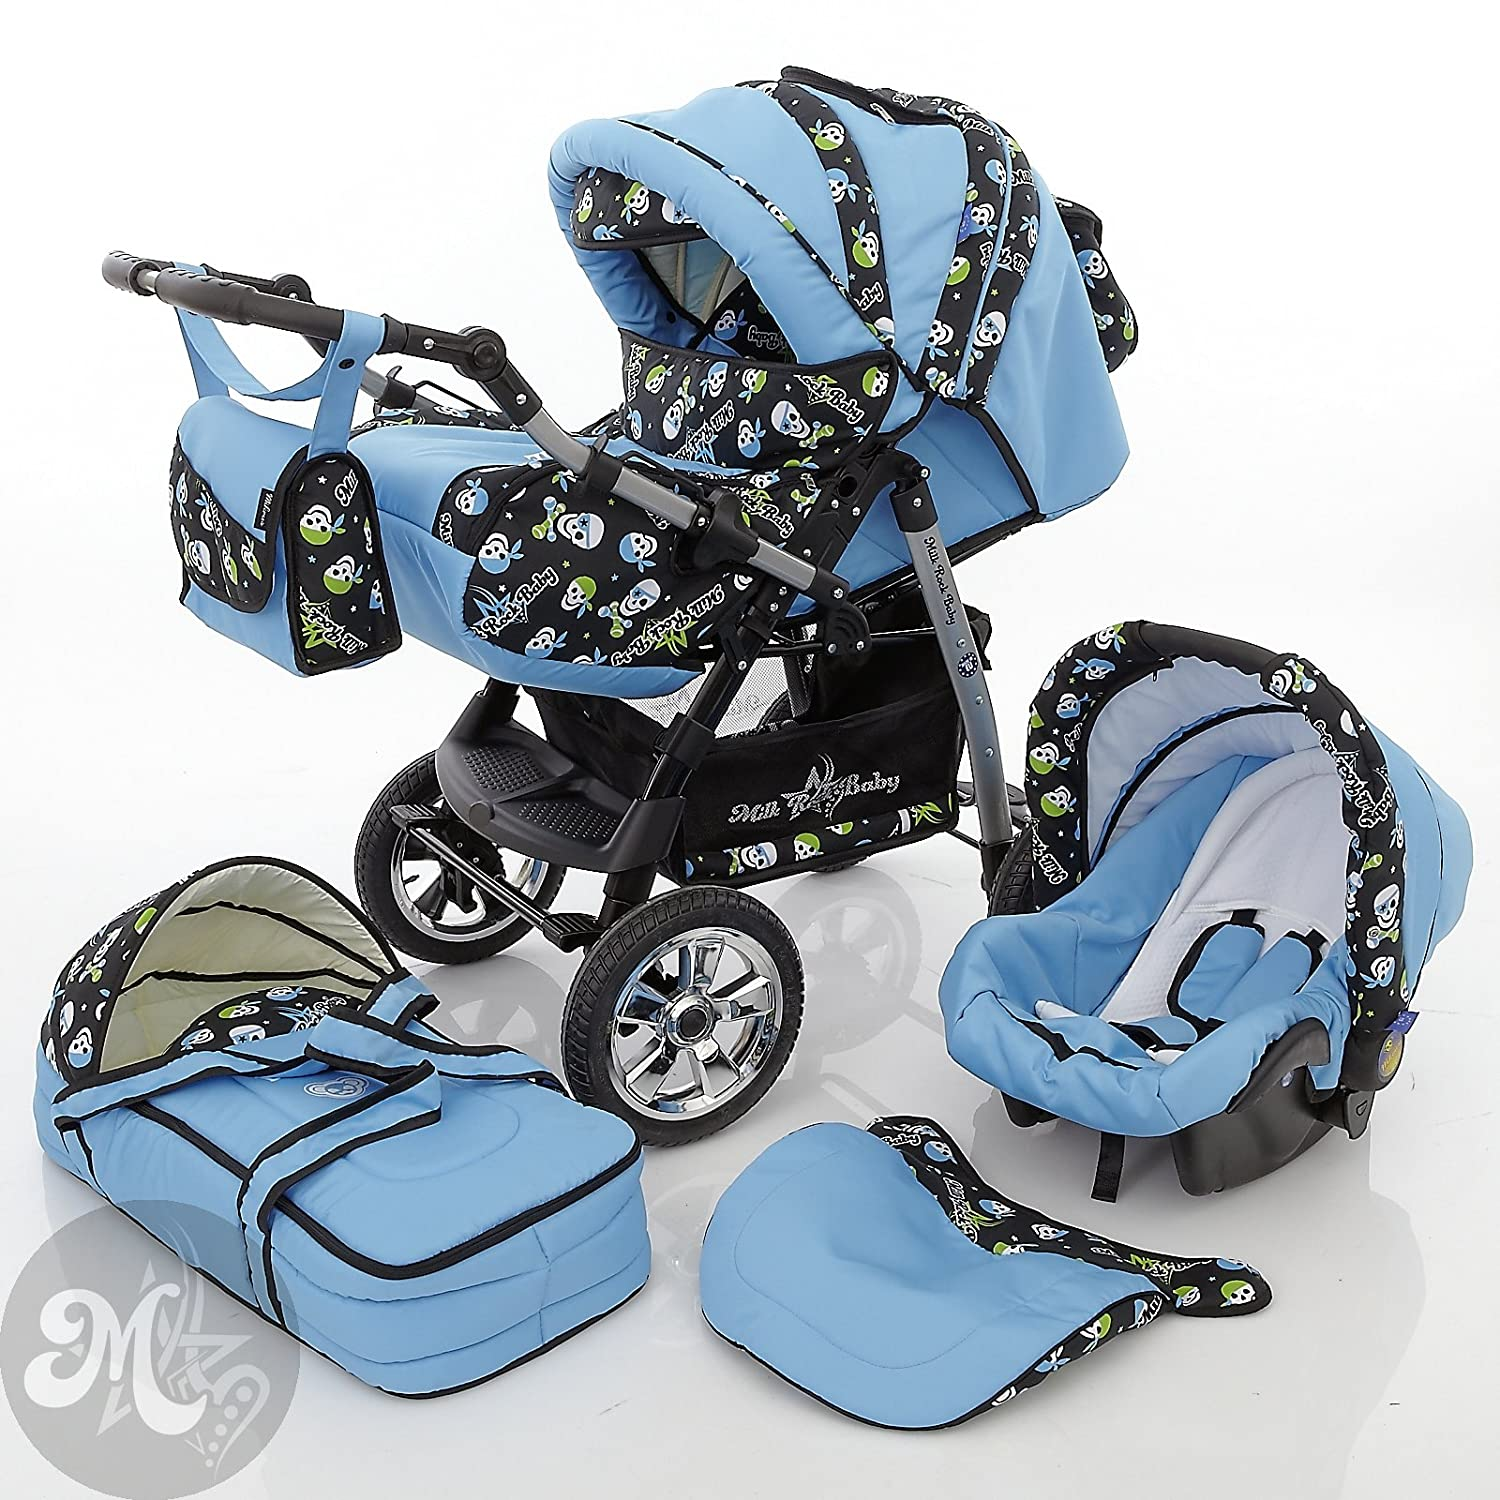 3 in 1 prams Cheap 3 in 1 Prams 81b4KU75iAL